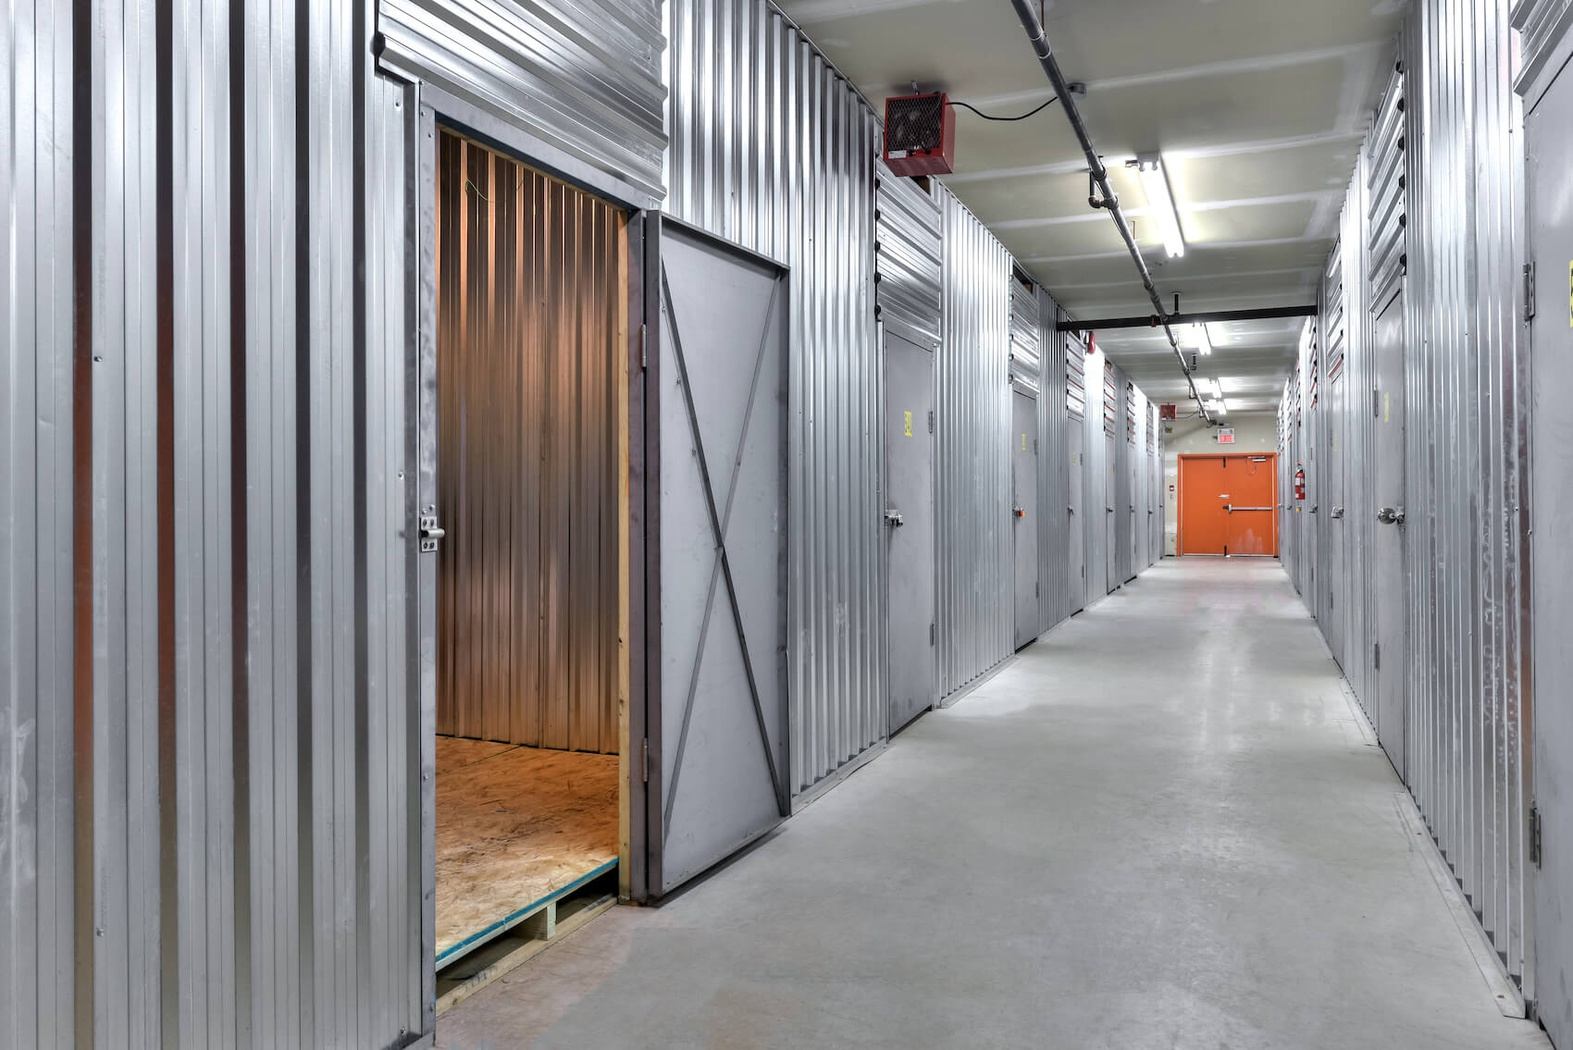 Rent Saint-Eustache storage units at 900 Boul Industriel. We offer a wide-range of affordable self storage units and your first 4 weeks are free!